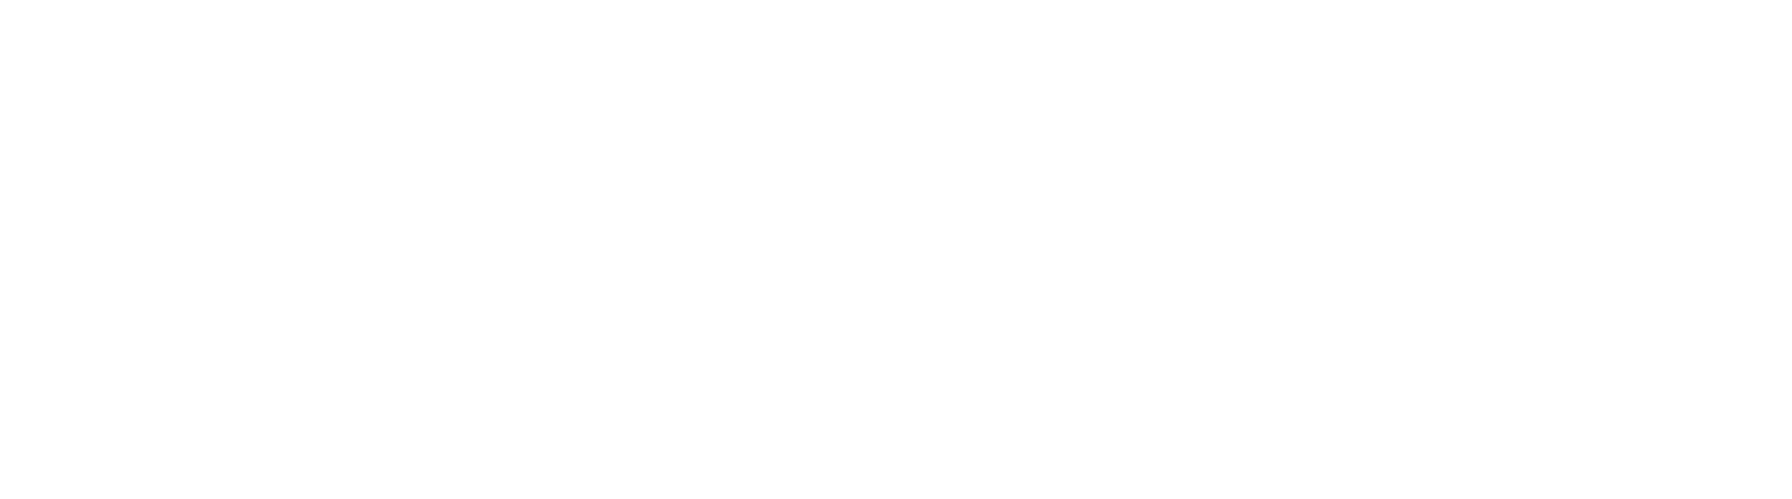 The vibe logo.png